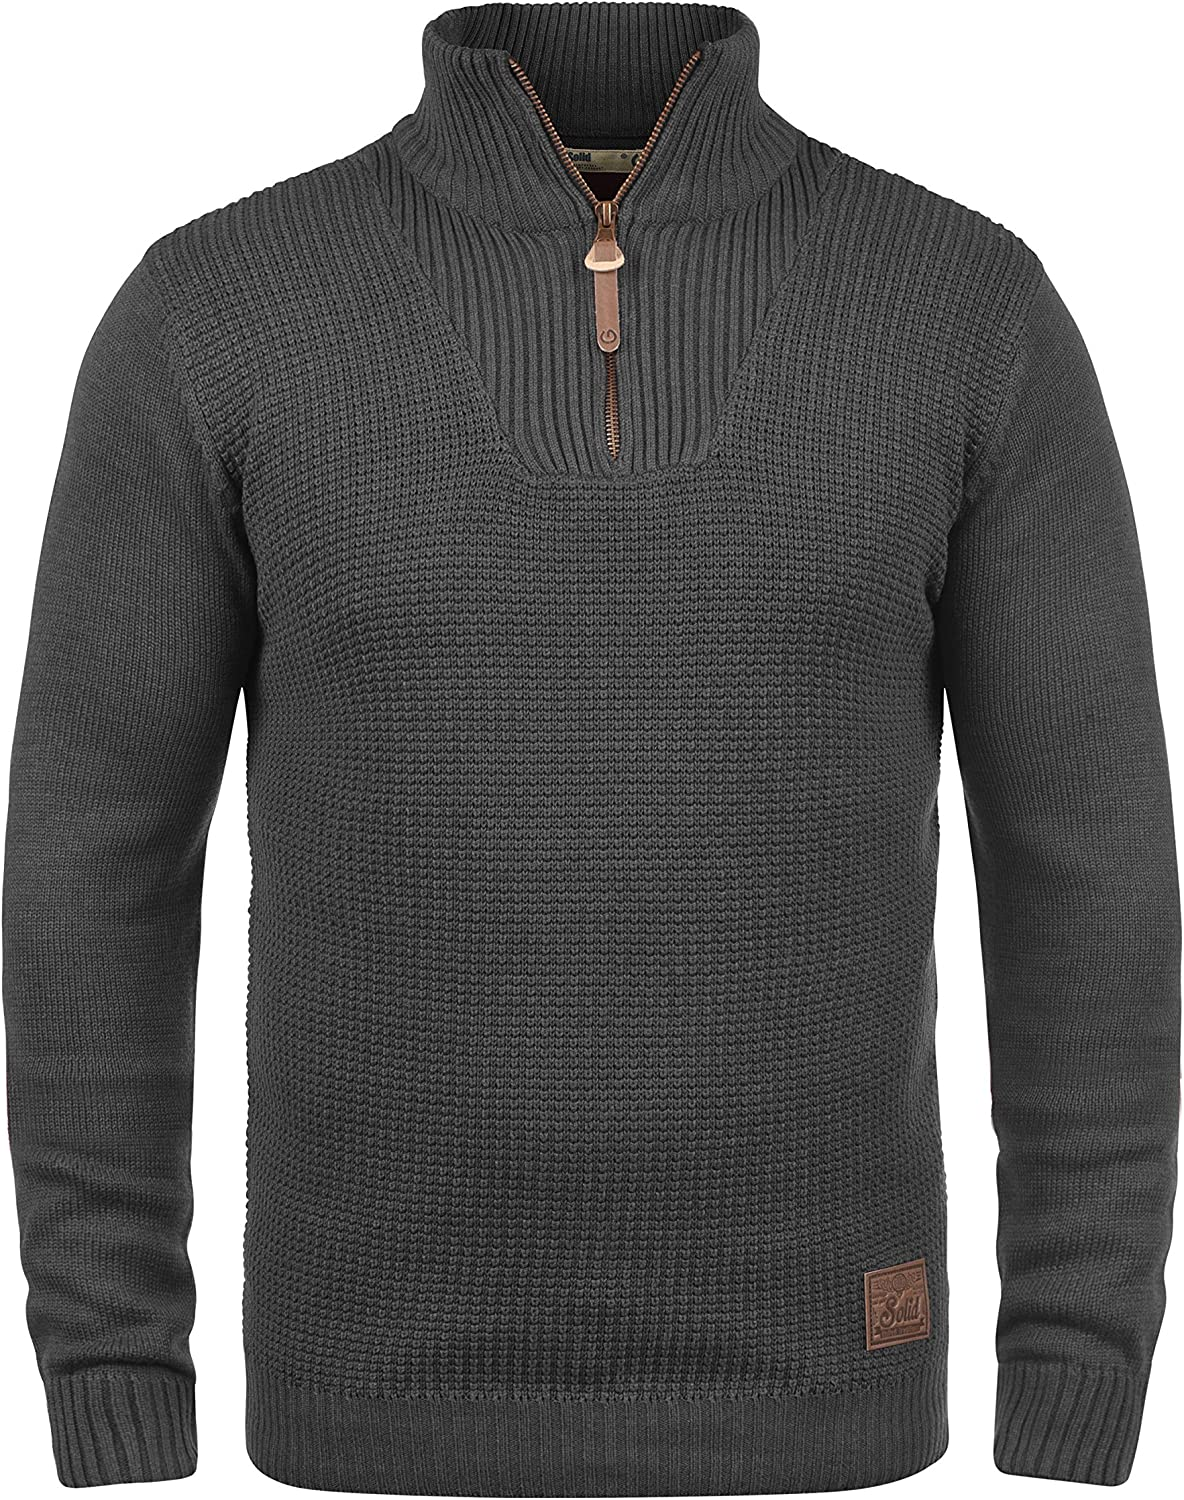 Solid Tommy Mens Jumper Knit Pullover with Half-Zip Funnel Neck